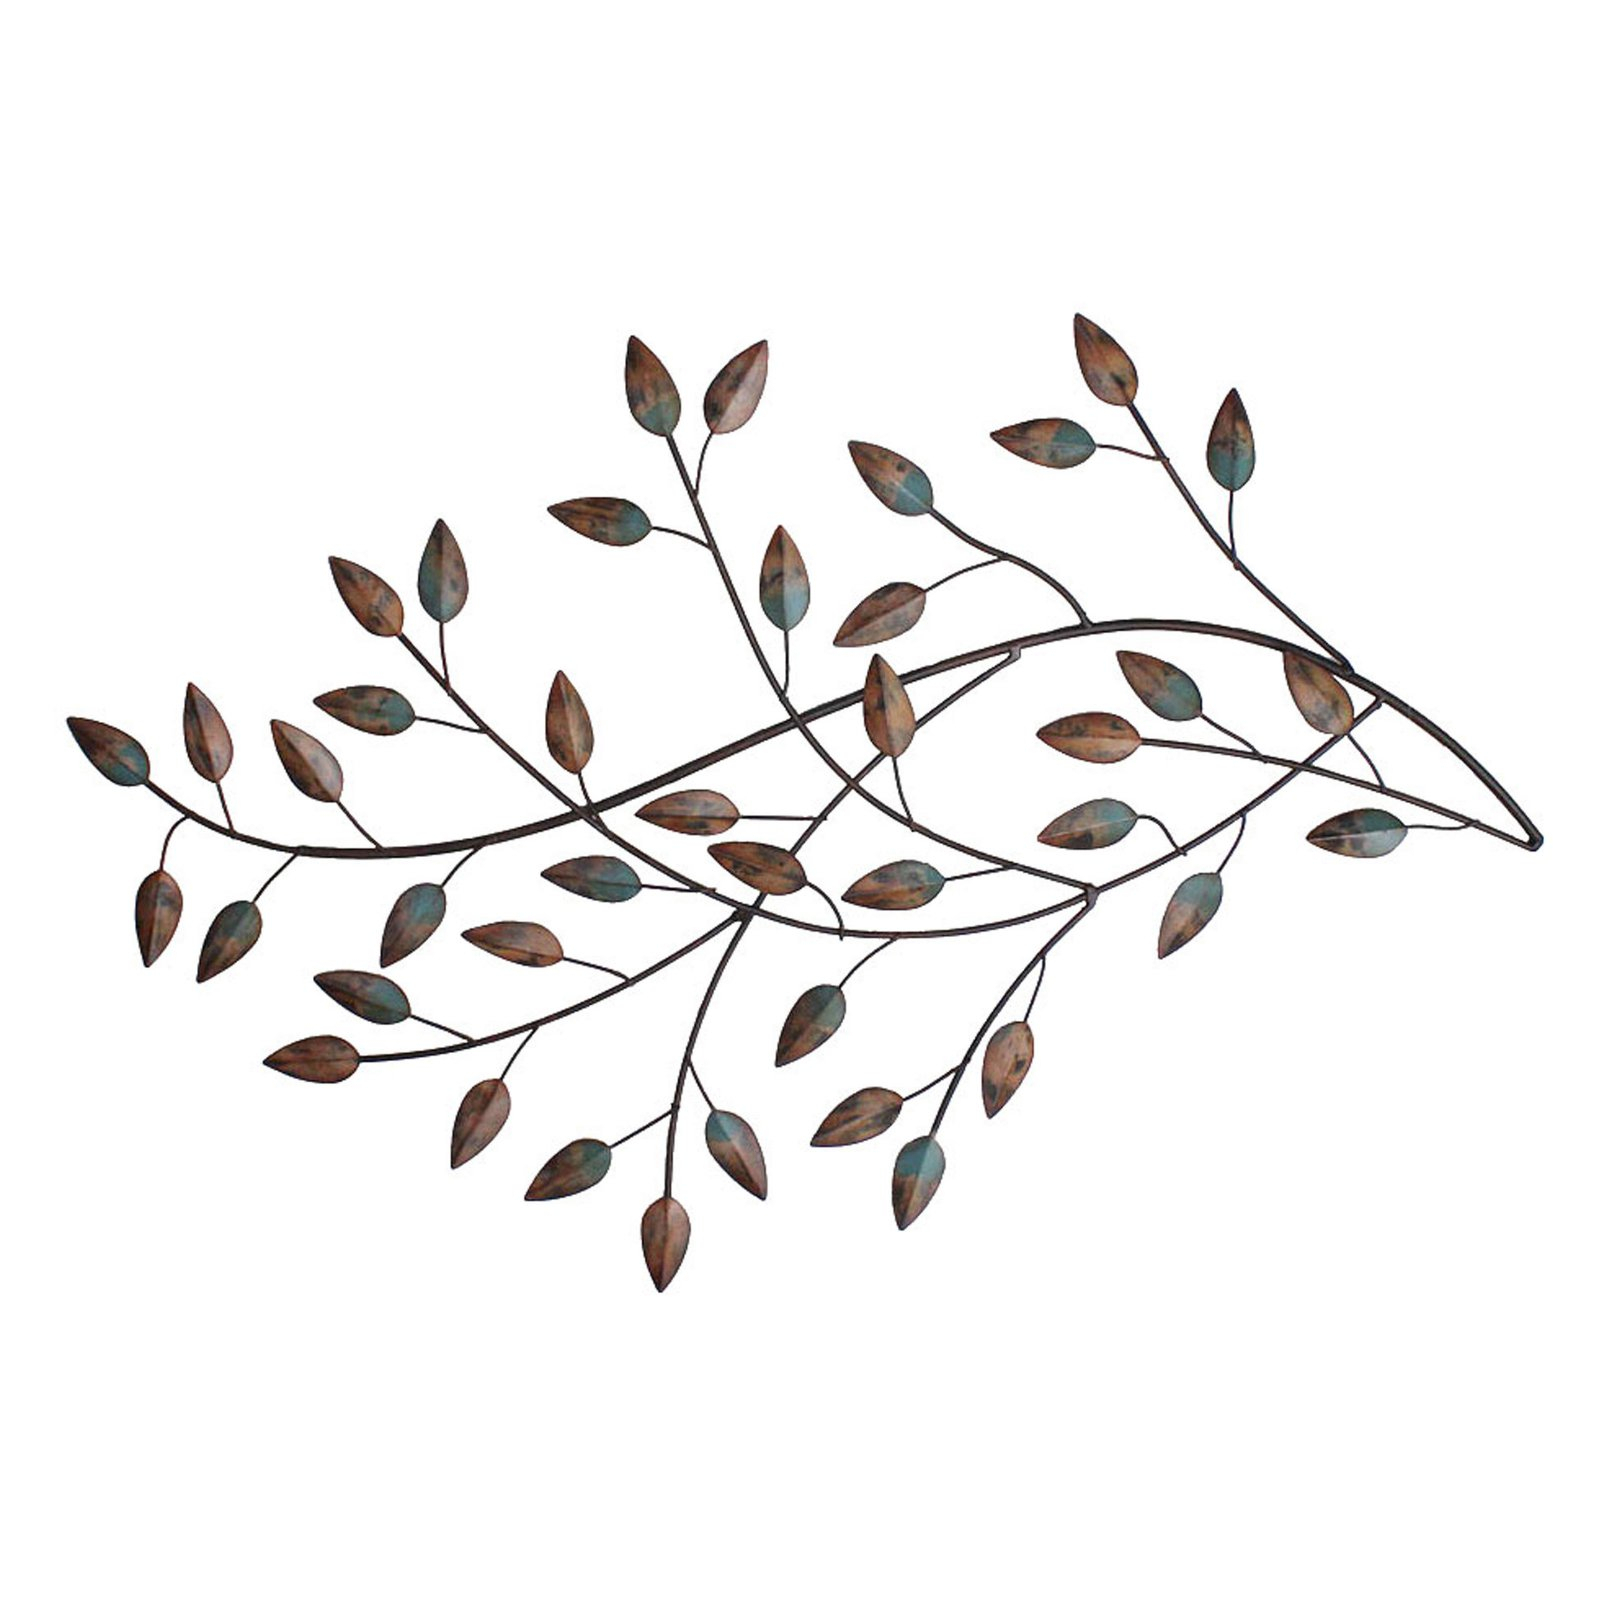 Well Known Blowing Leaves Wall Decor With Regard To Stratton Home Decor Blowing Leaves Wall Decor – Walmart (Gallery 2 of 20)